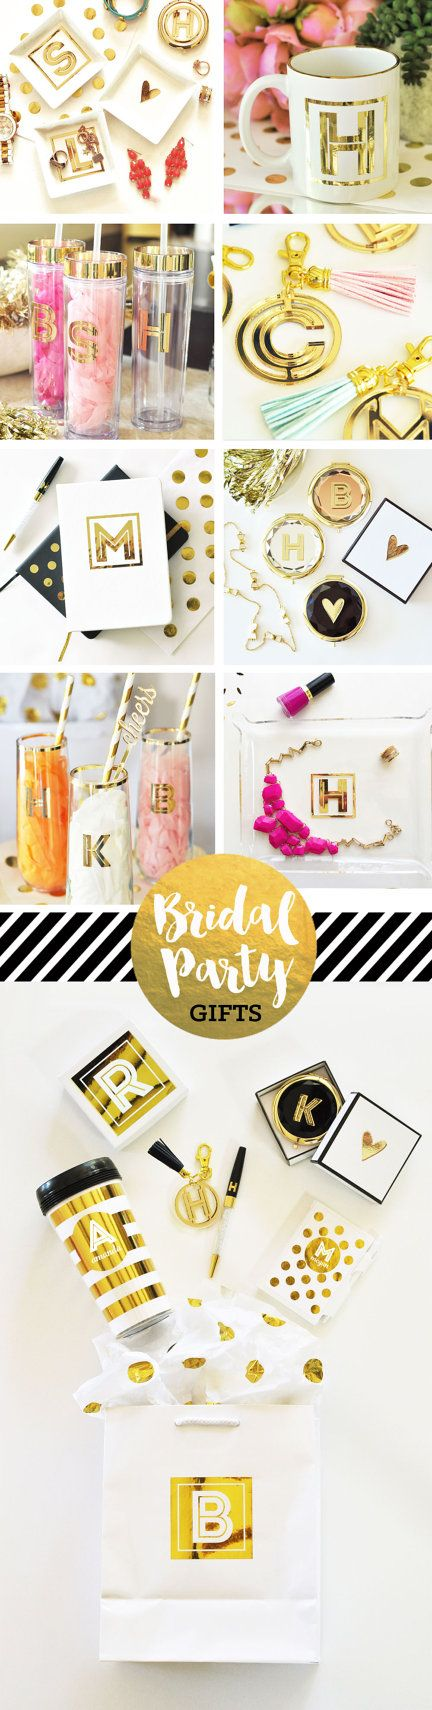 Bridesmaid Gifts for you Bridal Party - Personalized Water Bottles, Keychains, Stemless Wine Glasses, Mirror Compacts, Coffee Mugs, Jewelry Trays, Gift Boxes, Gift Bags - all in metallic gold!  by Mod Party